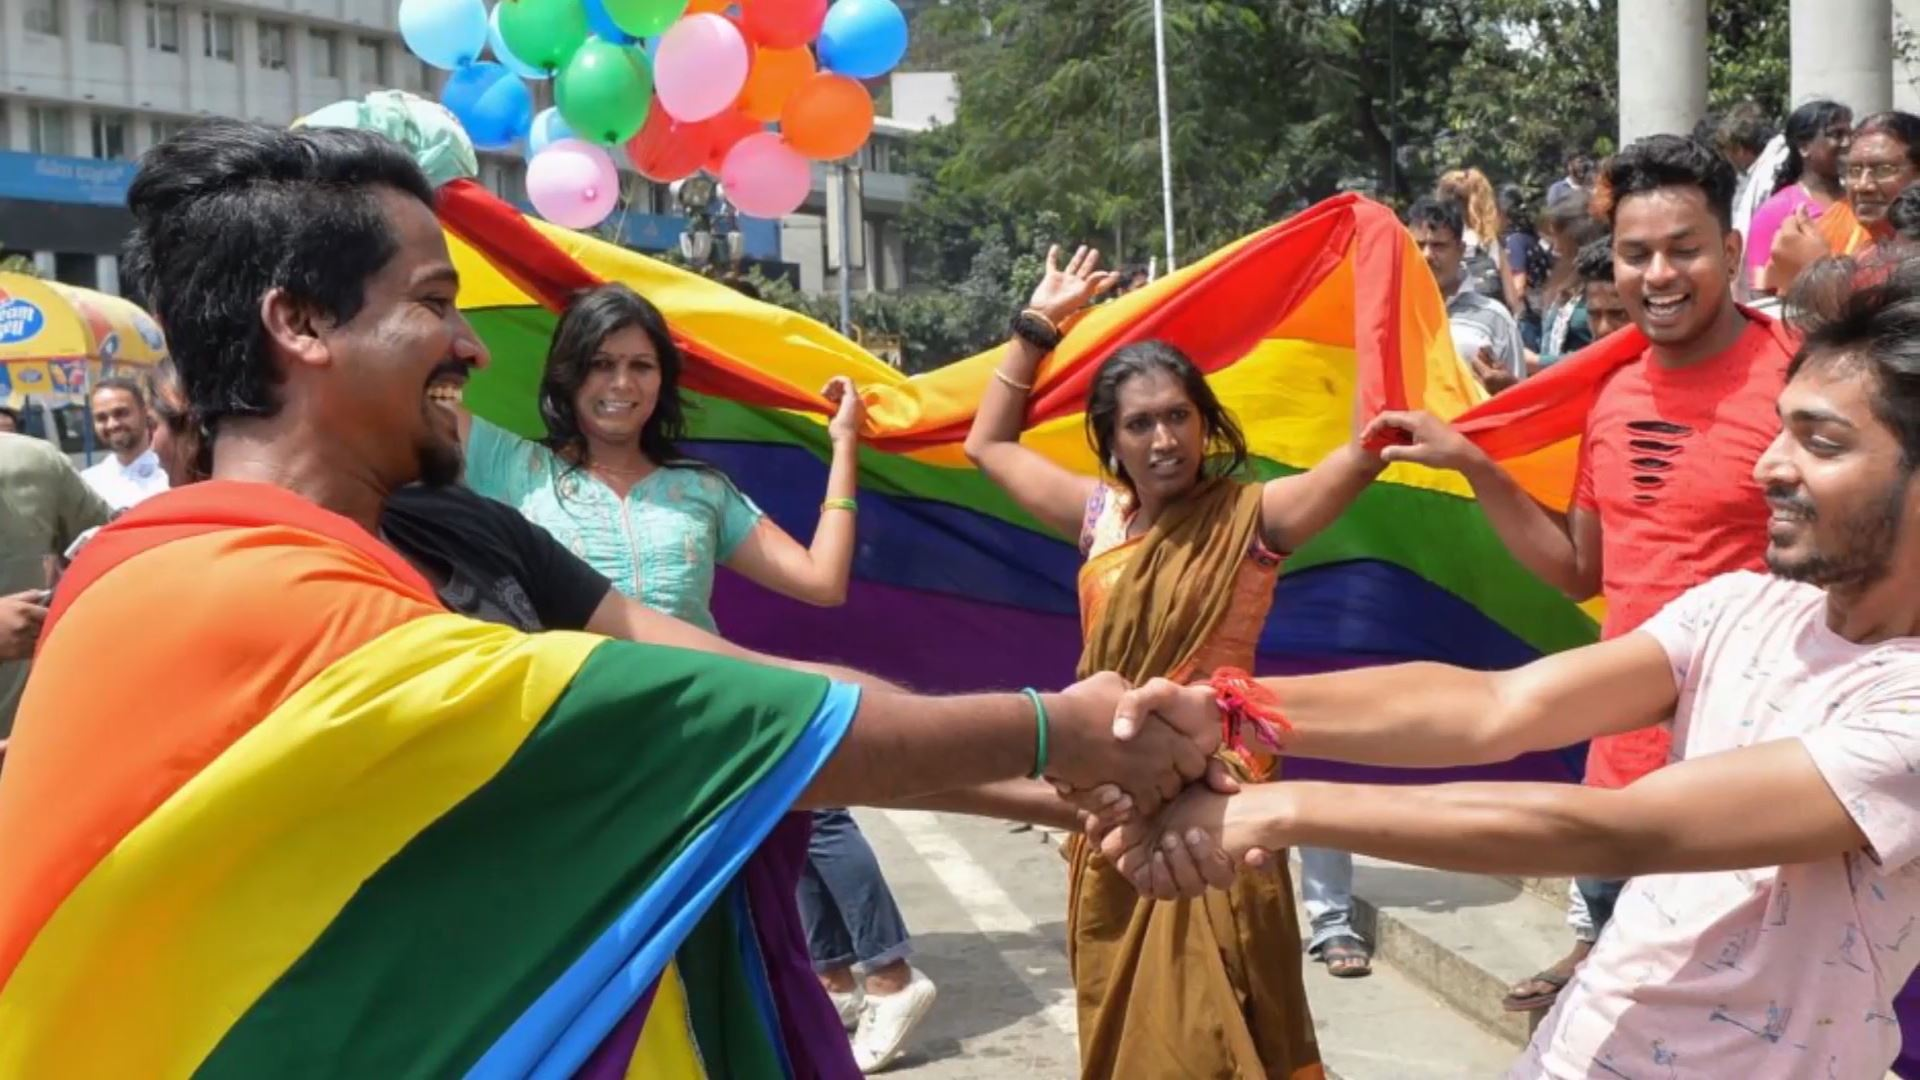 Young Indian people dancing, with two men holding hands and draped in a rainbow banner